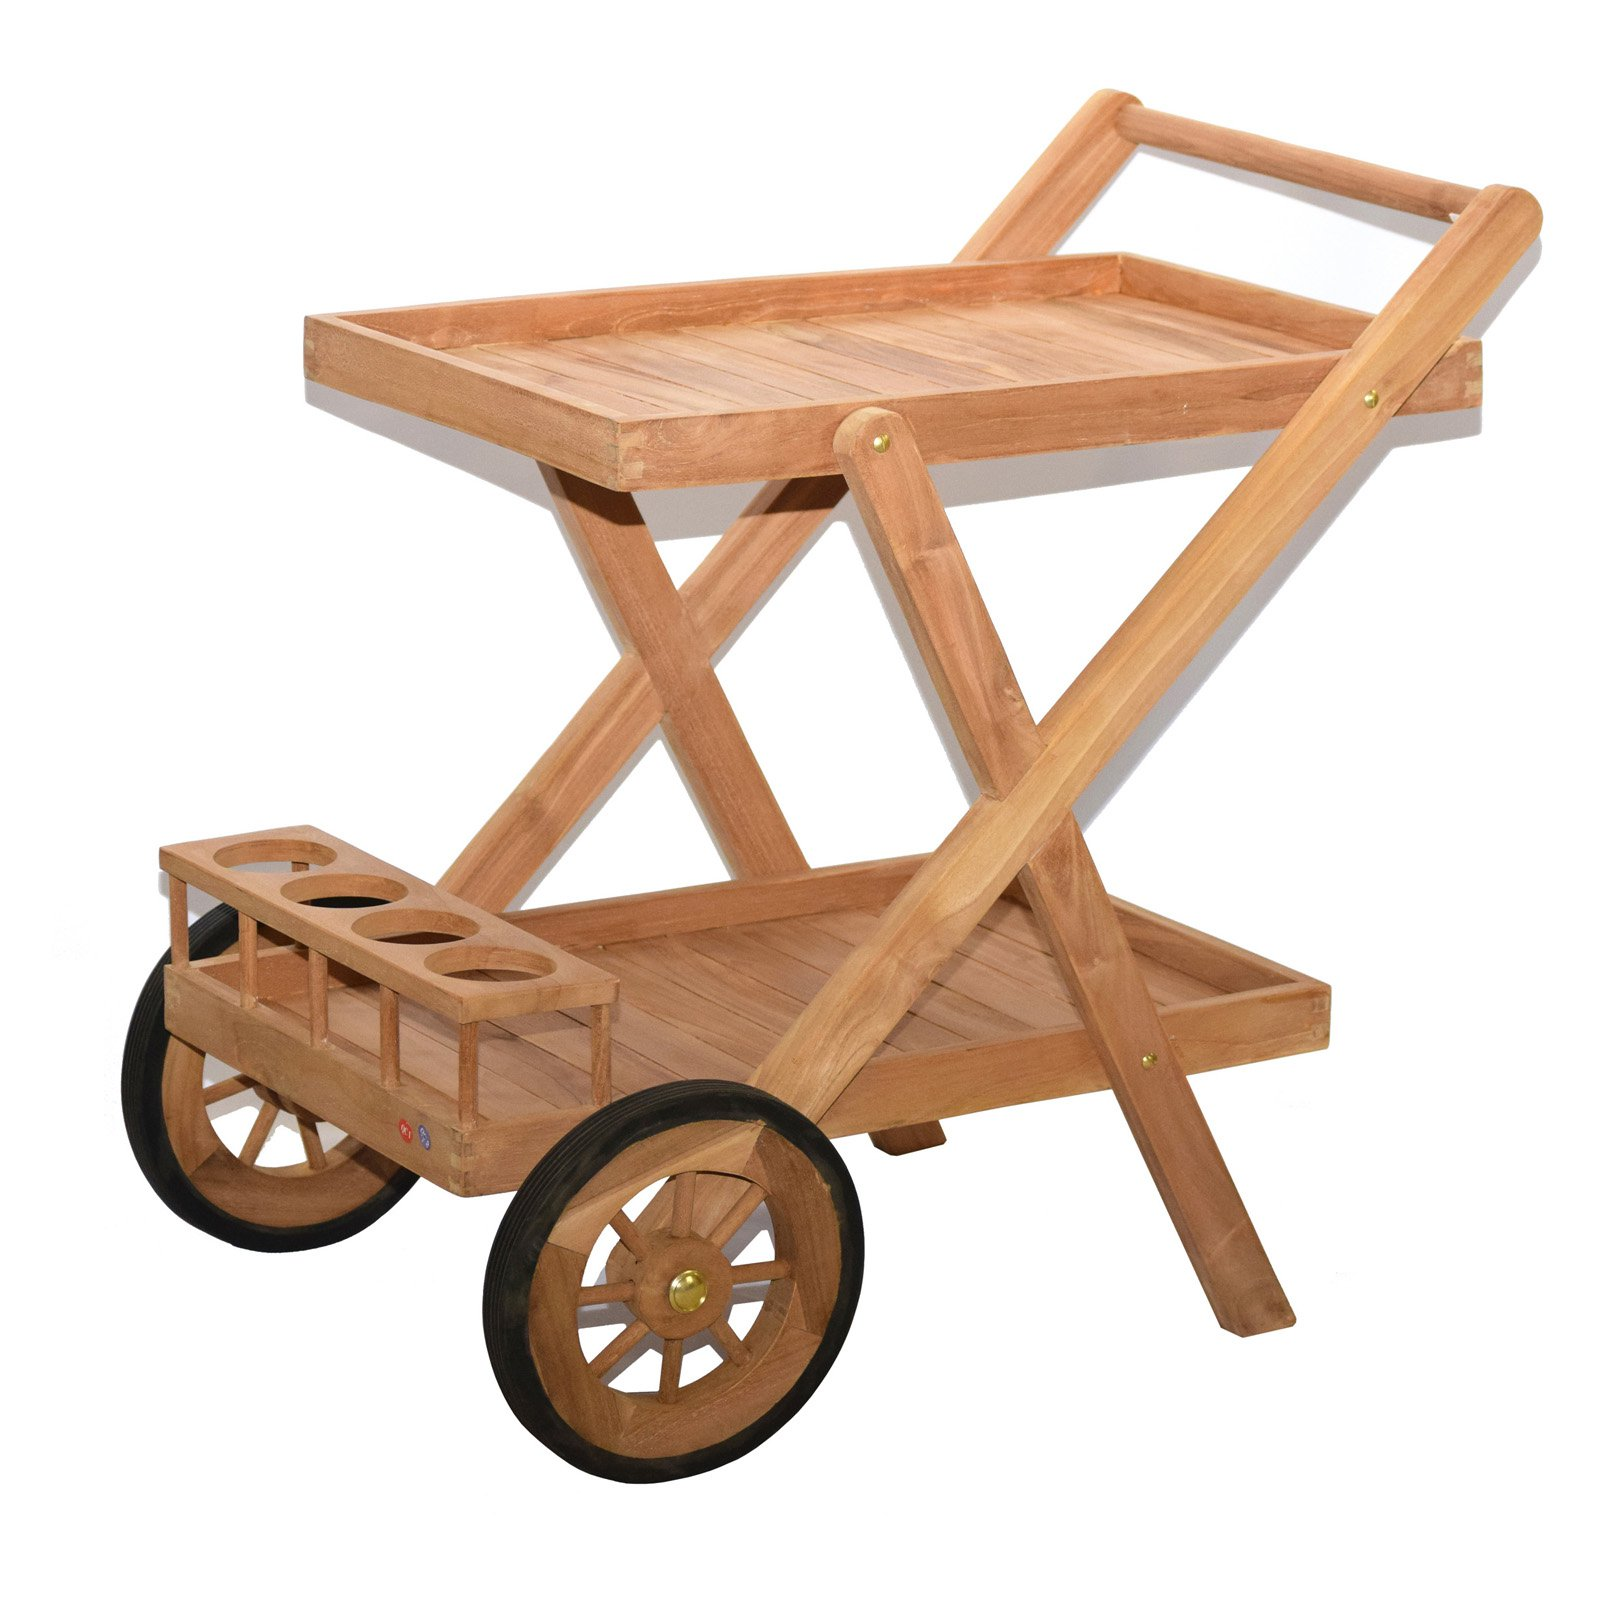 Bamboo54 Teak Outdoor Serving Cart by Bamboo54